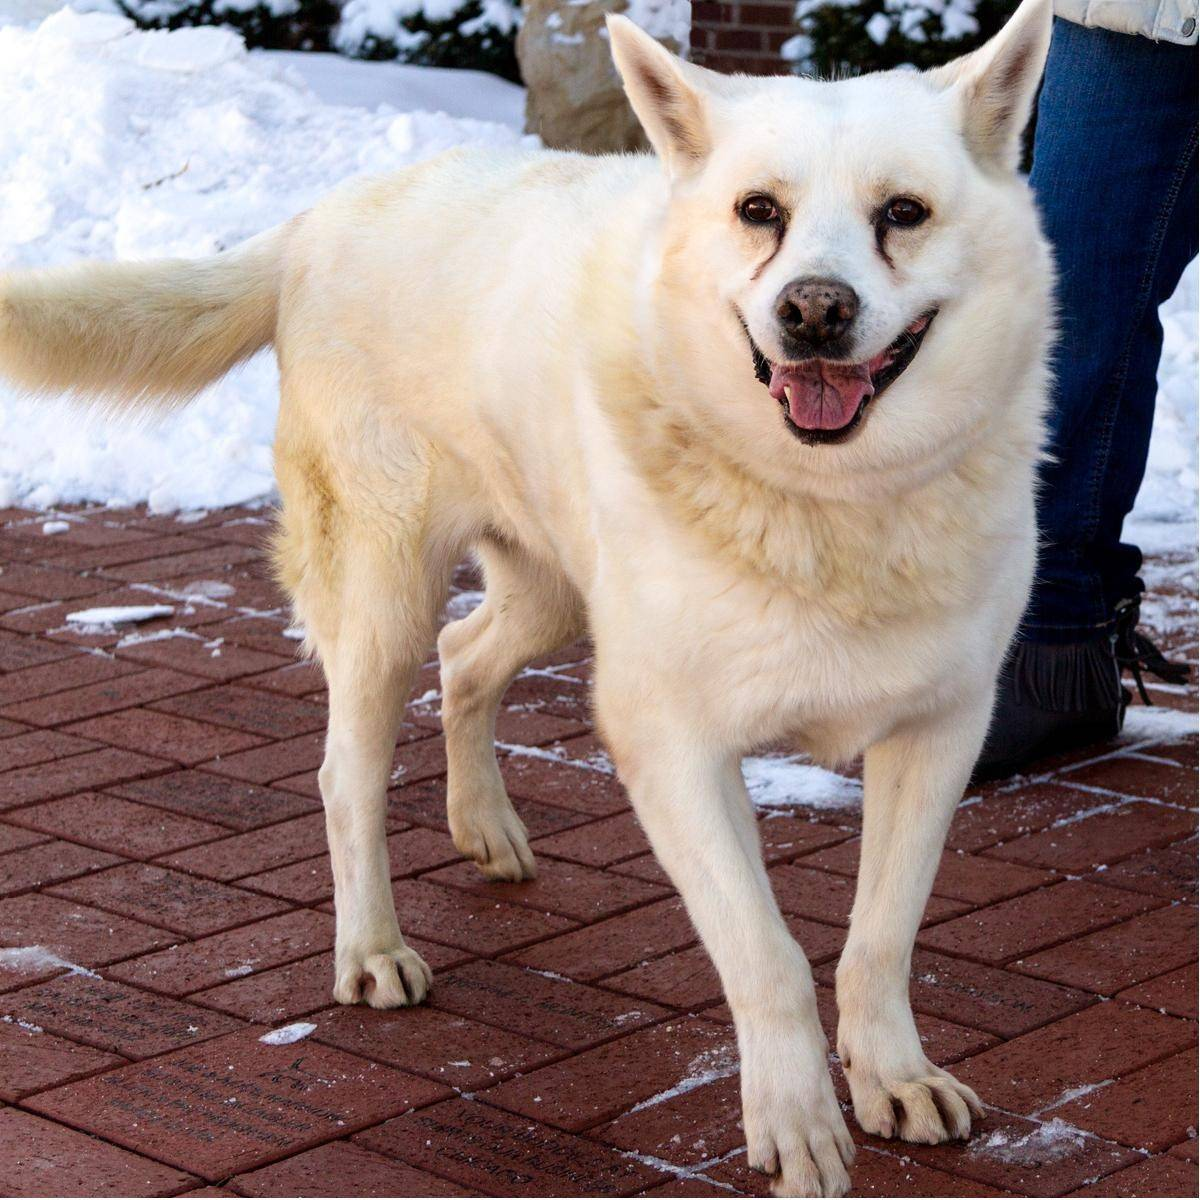 Beautiful Joe is a male, white German shepherd, who is about 7½ years old and weighs 71 pounds.